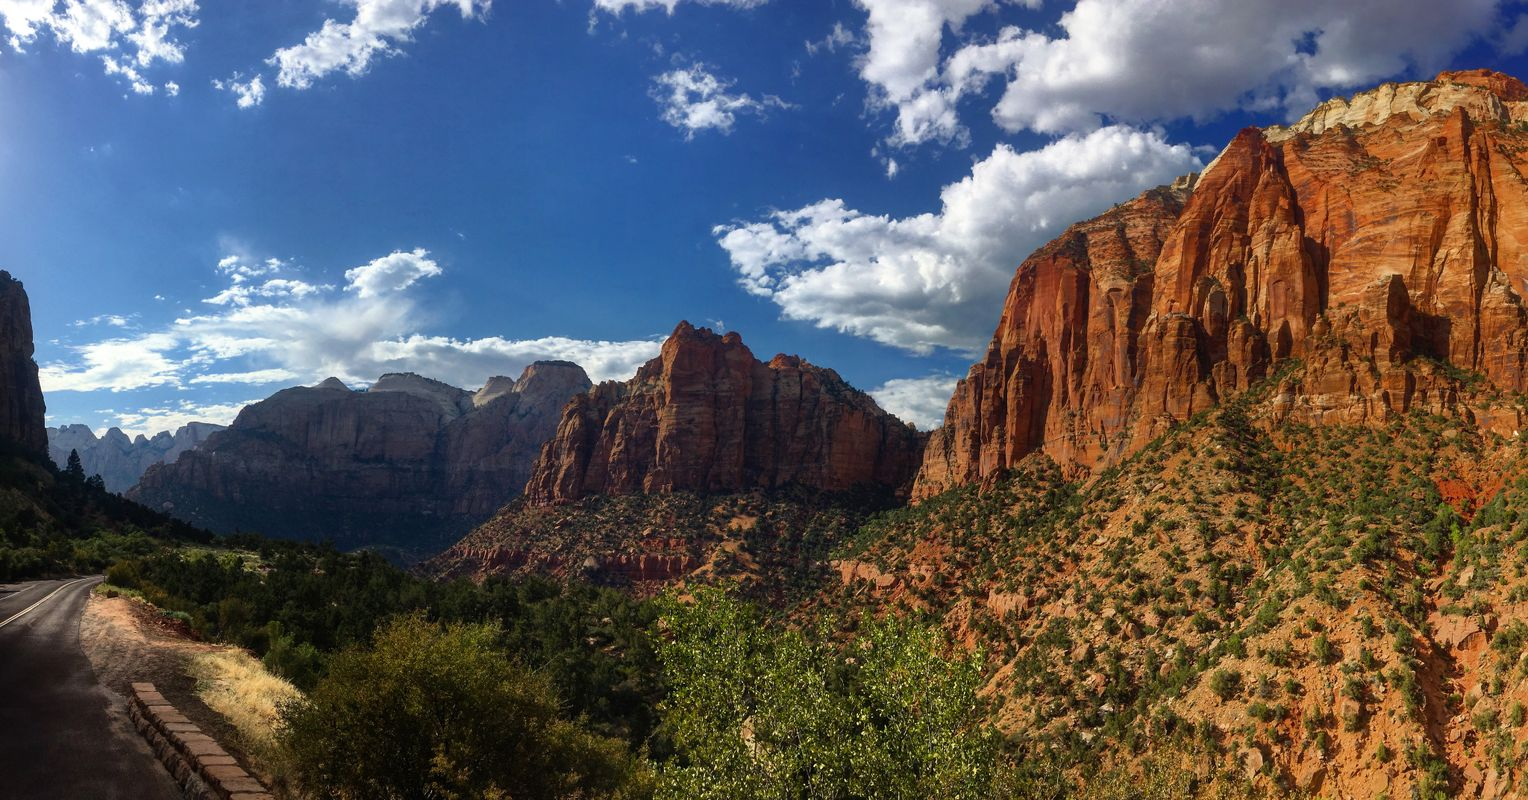 Roadside View of Zion Mountains